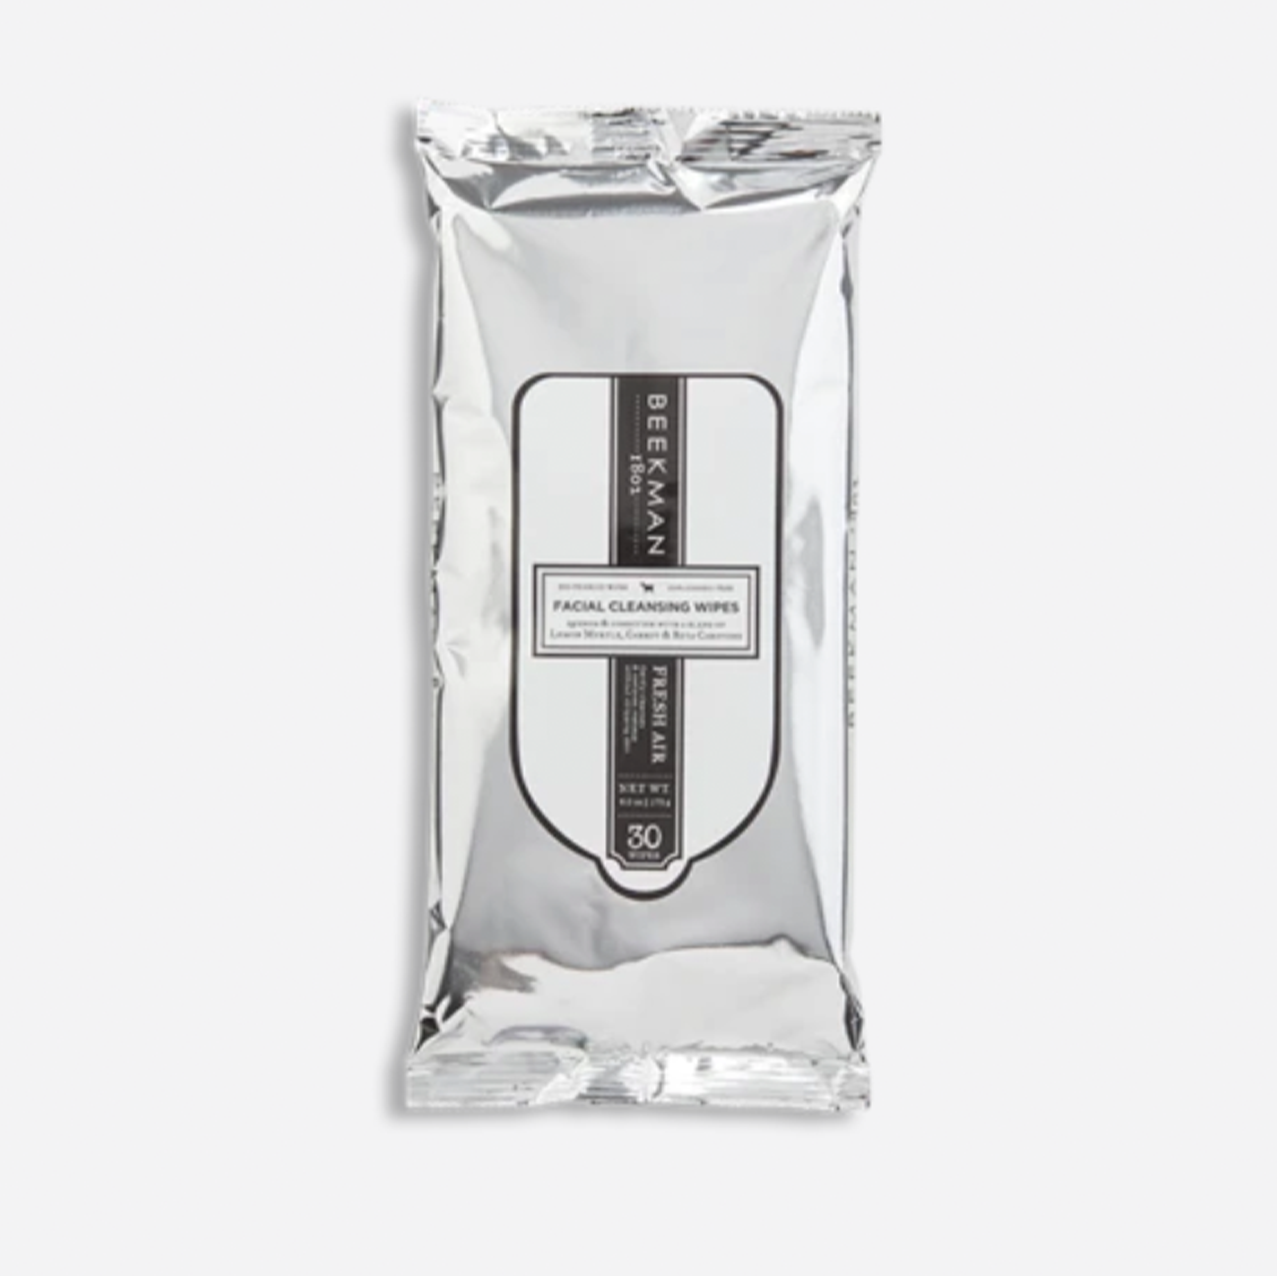 Facial Cleansing Wipes | Beekman 1802